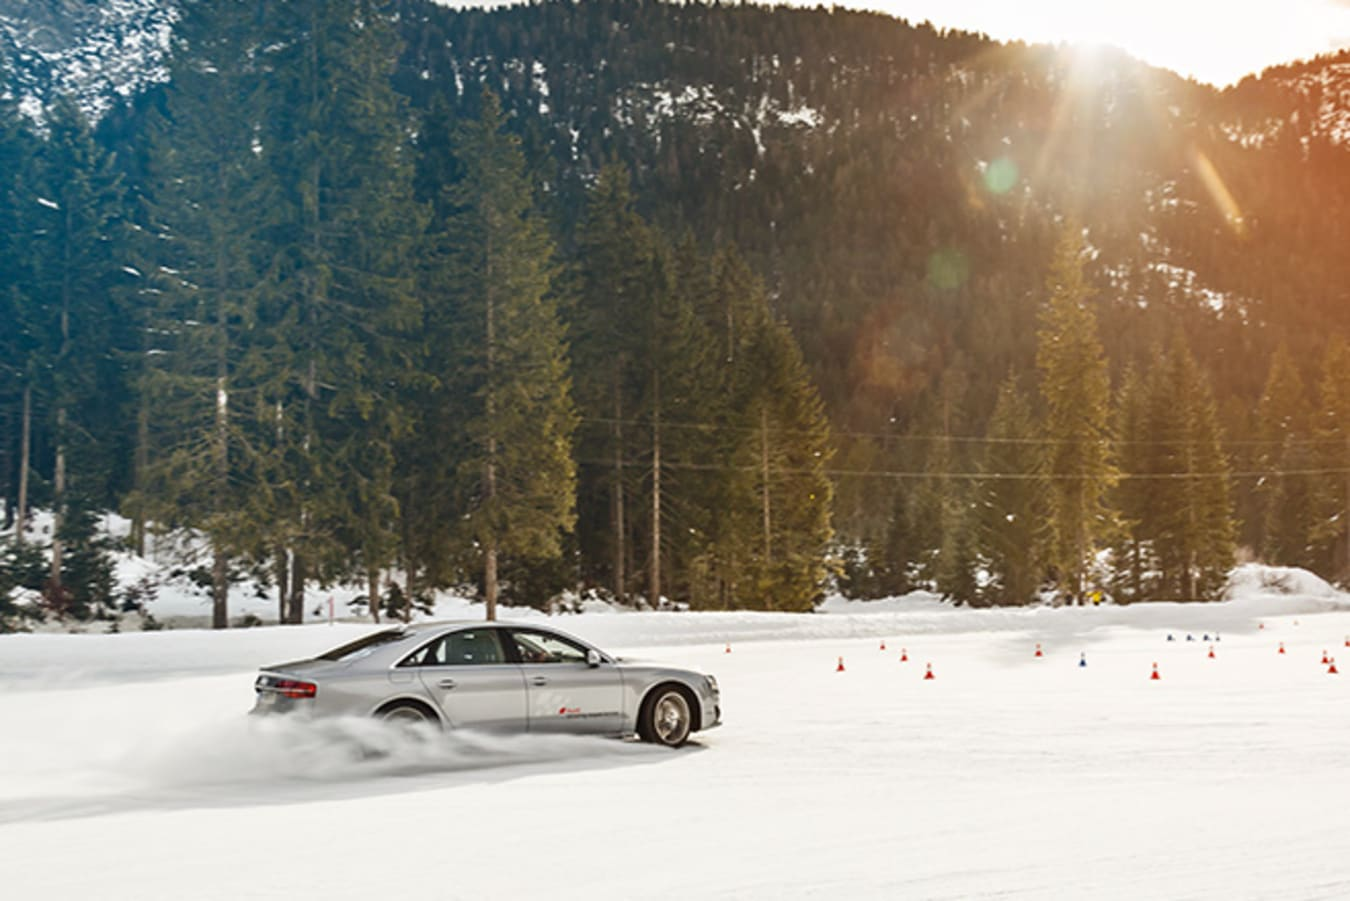 Audi Driving Experience - silver Audi on ice